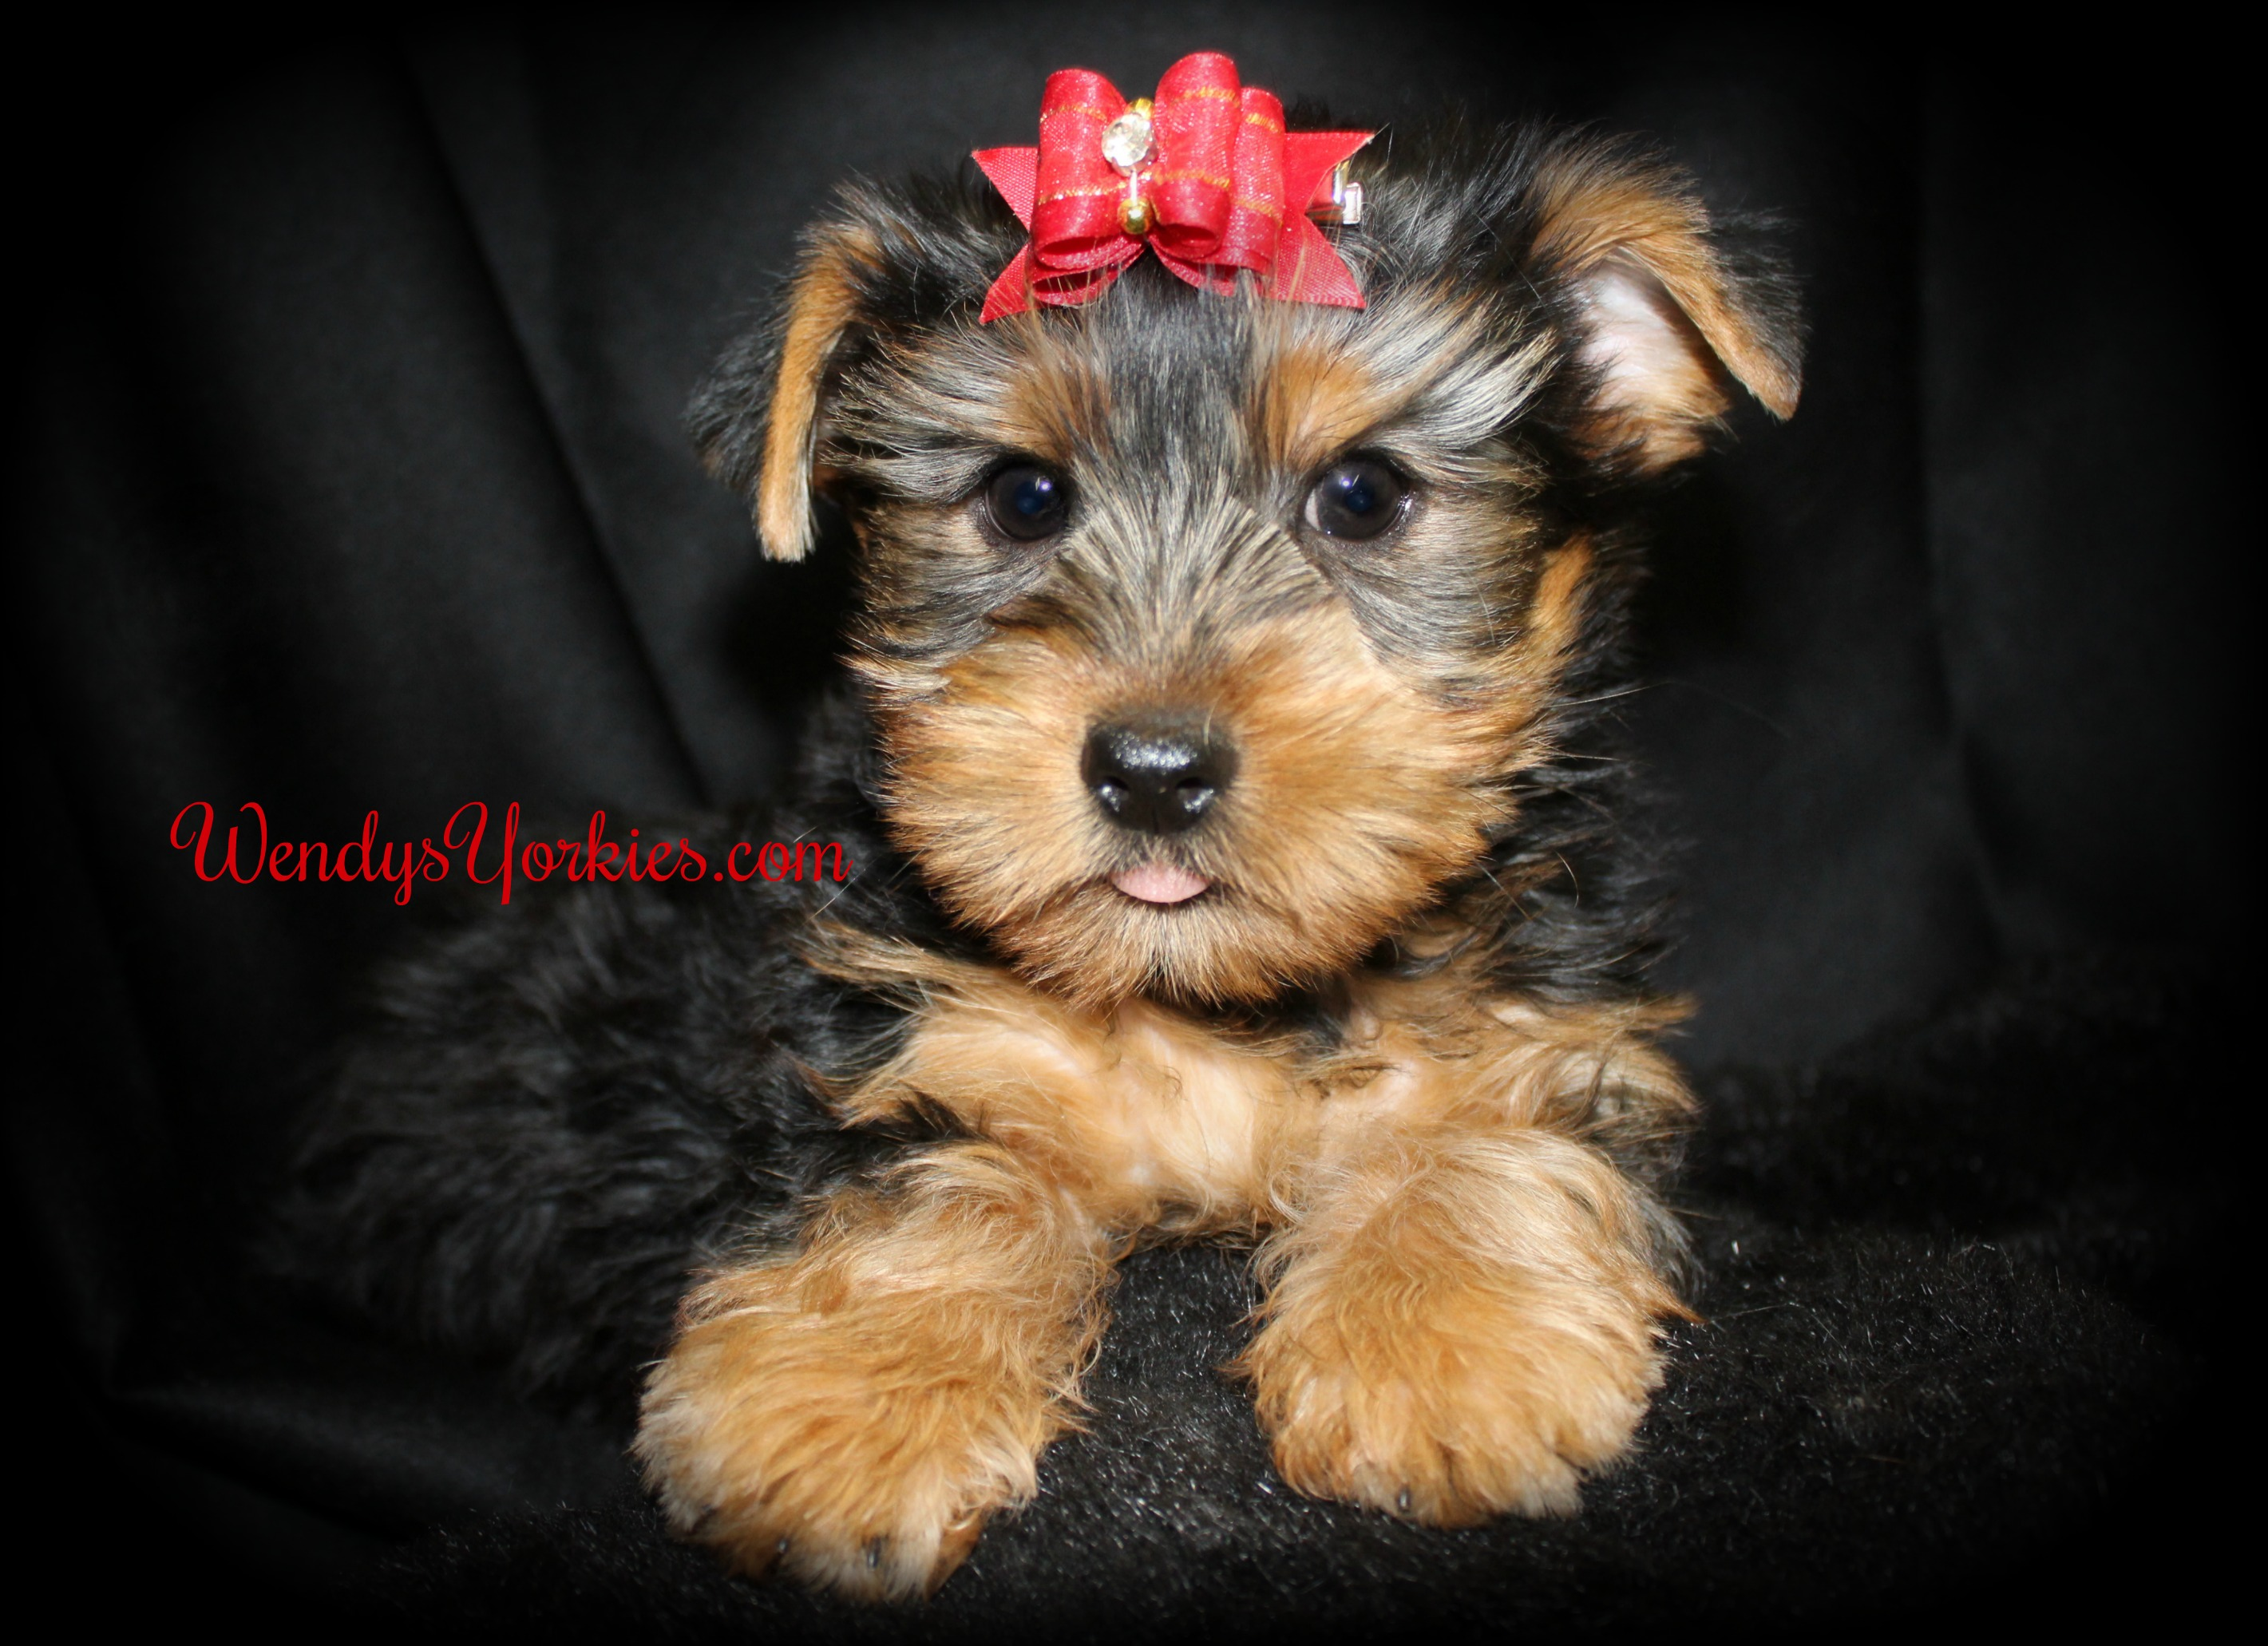 Cute Yorkie puppies for sale, WendysYorkies.com, Brittney m1